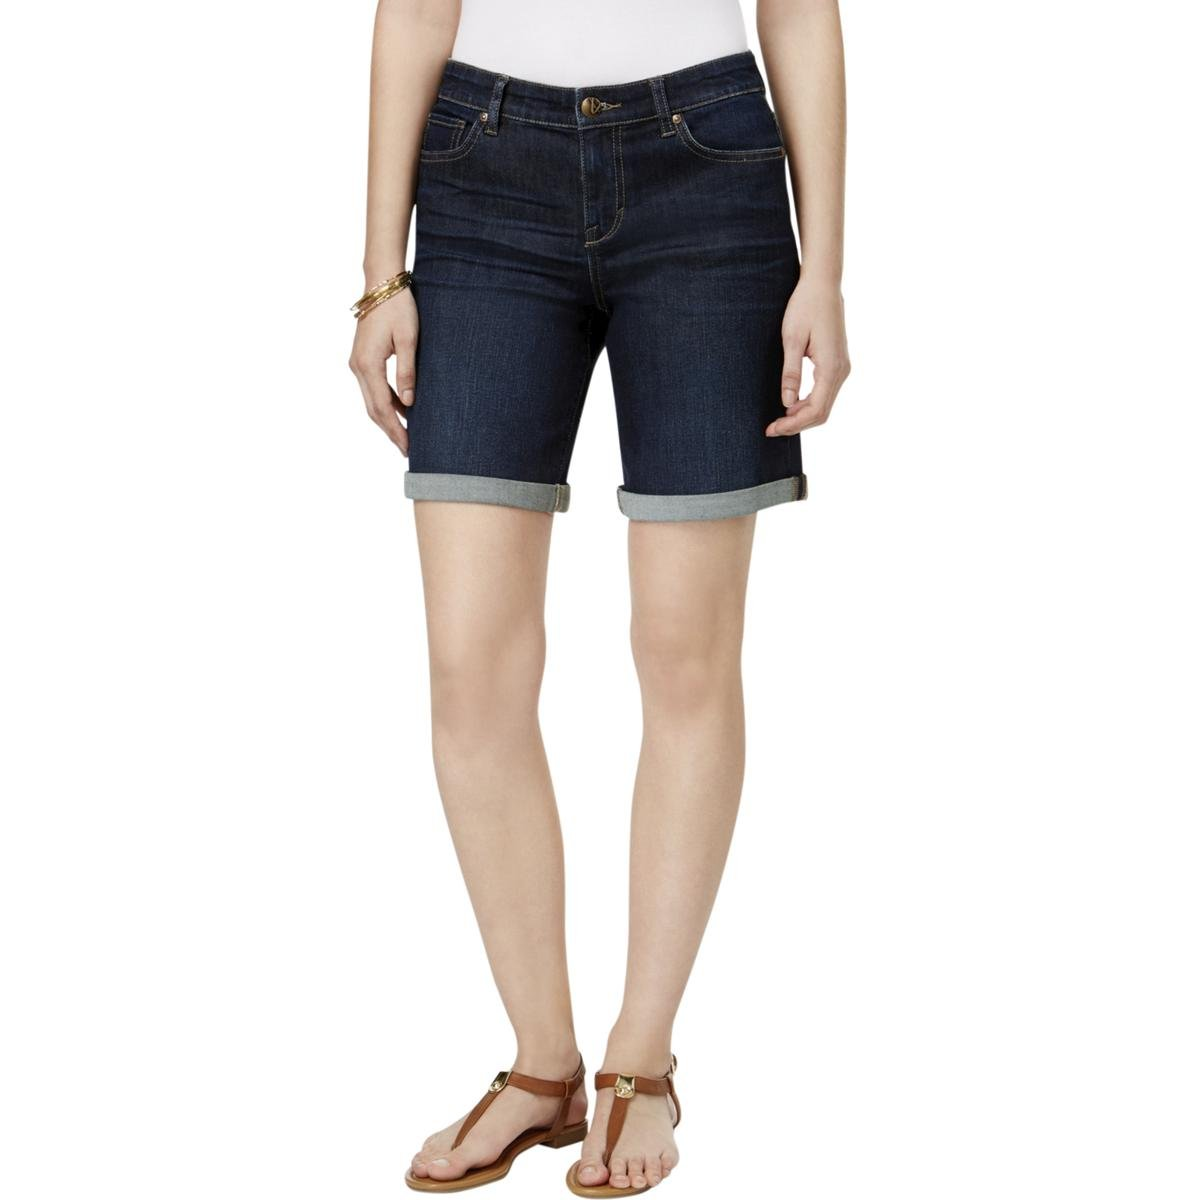 Style & Co. Womens Plus Mid Rise Cuffed Denim Shorts Denim 4 by Style & Co.